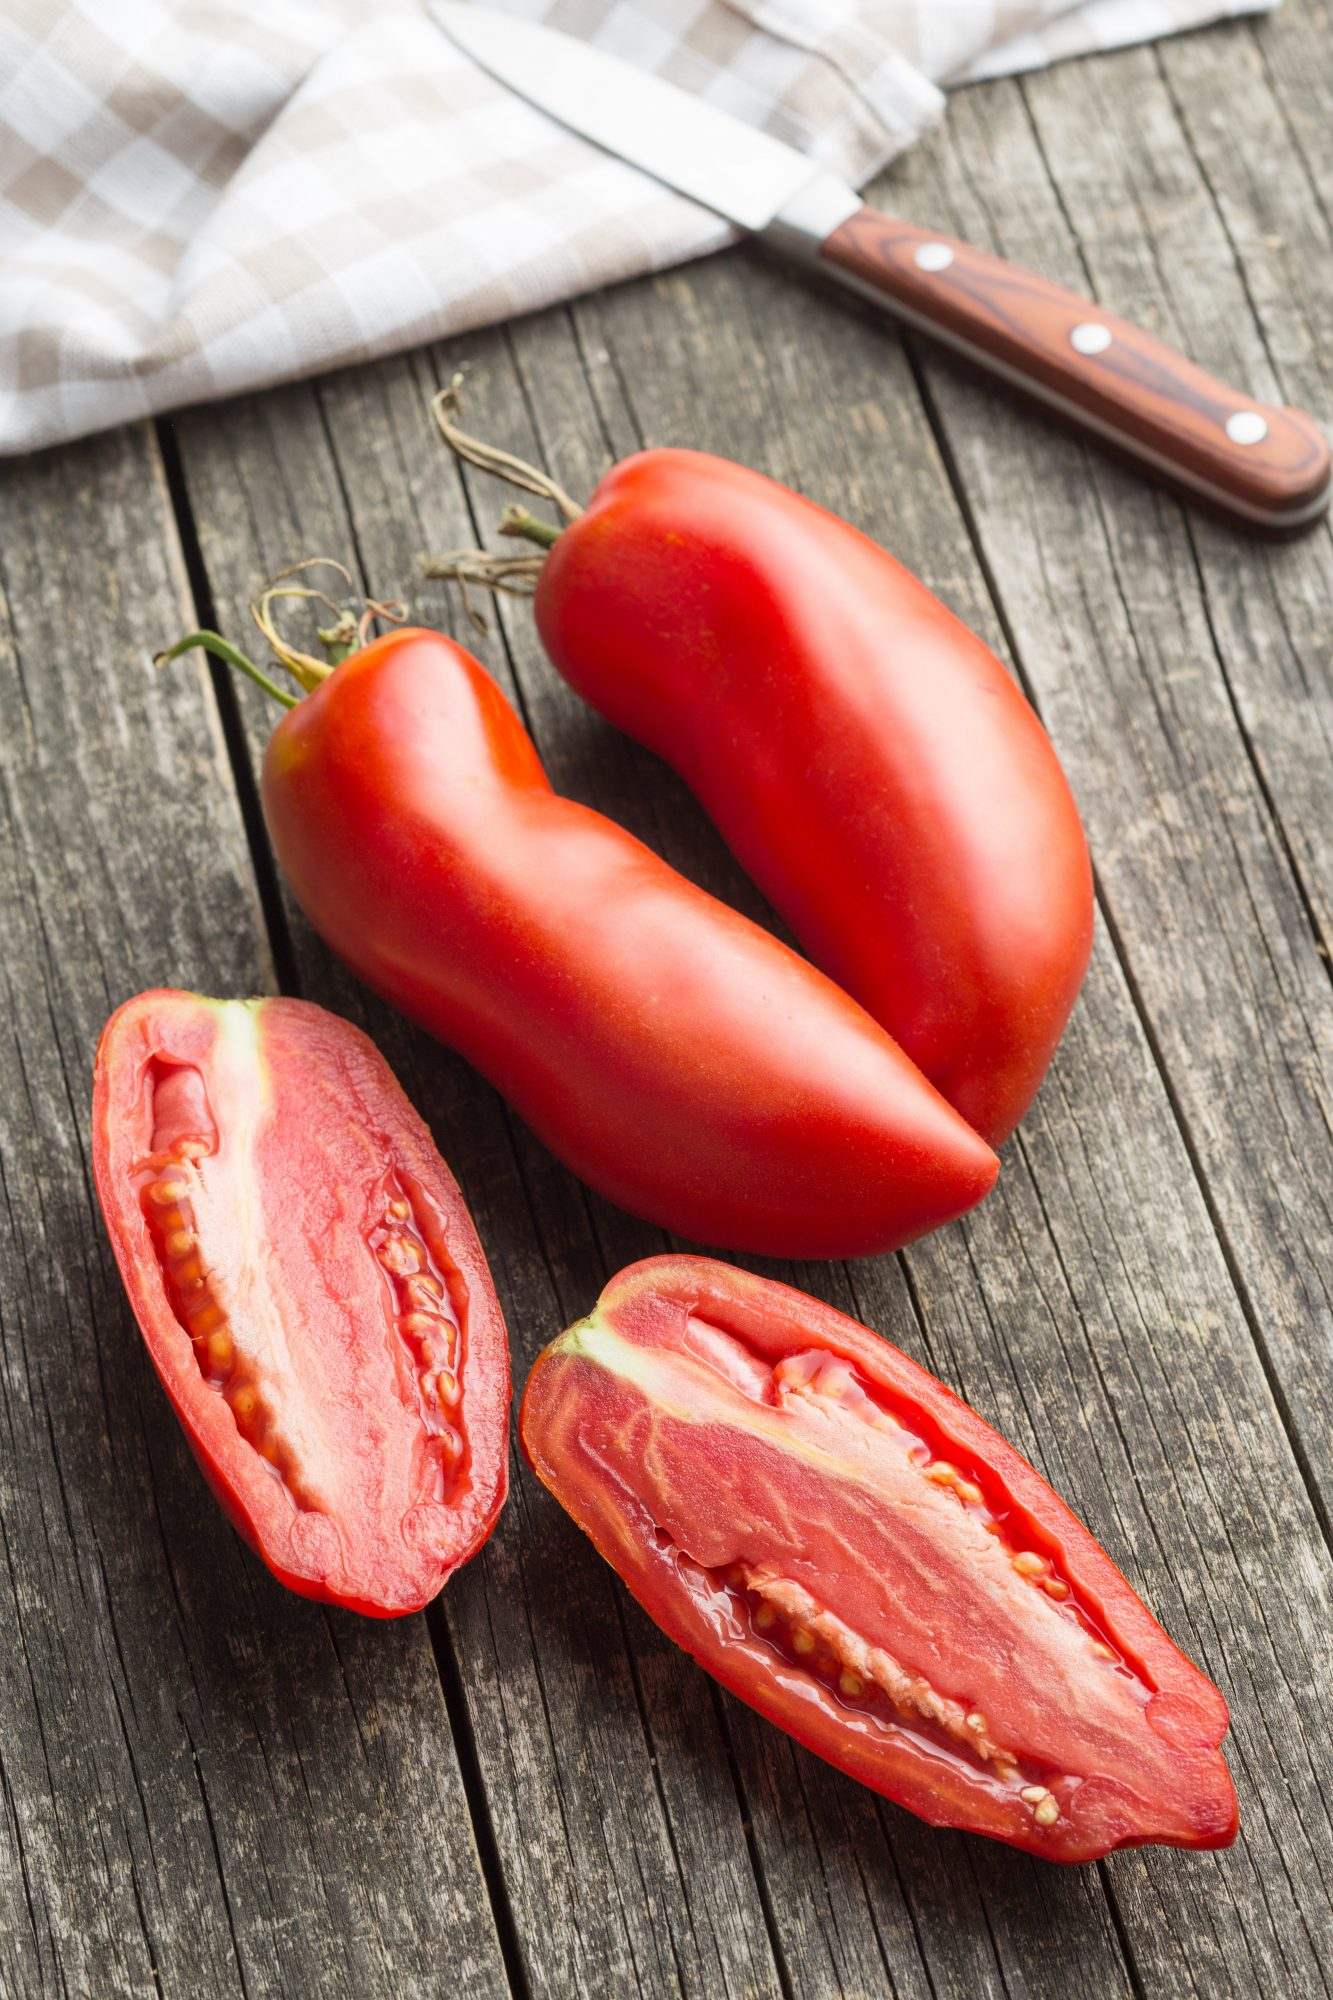 What Is So Special About San Marzano Tomatoes?